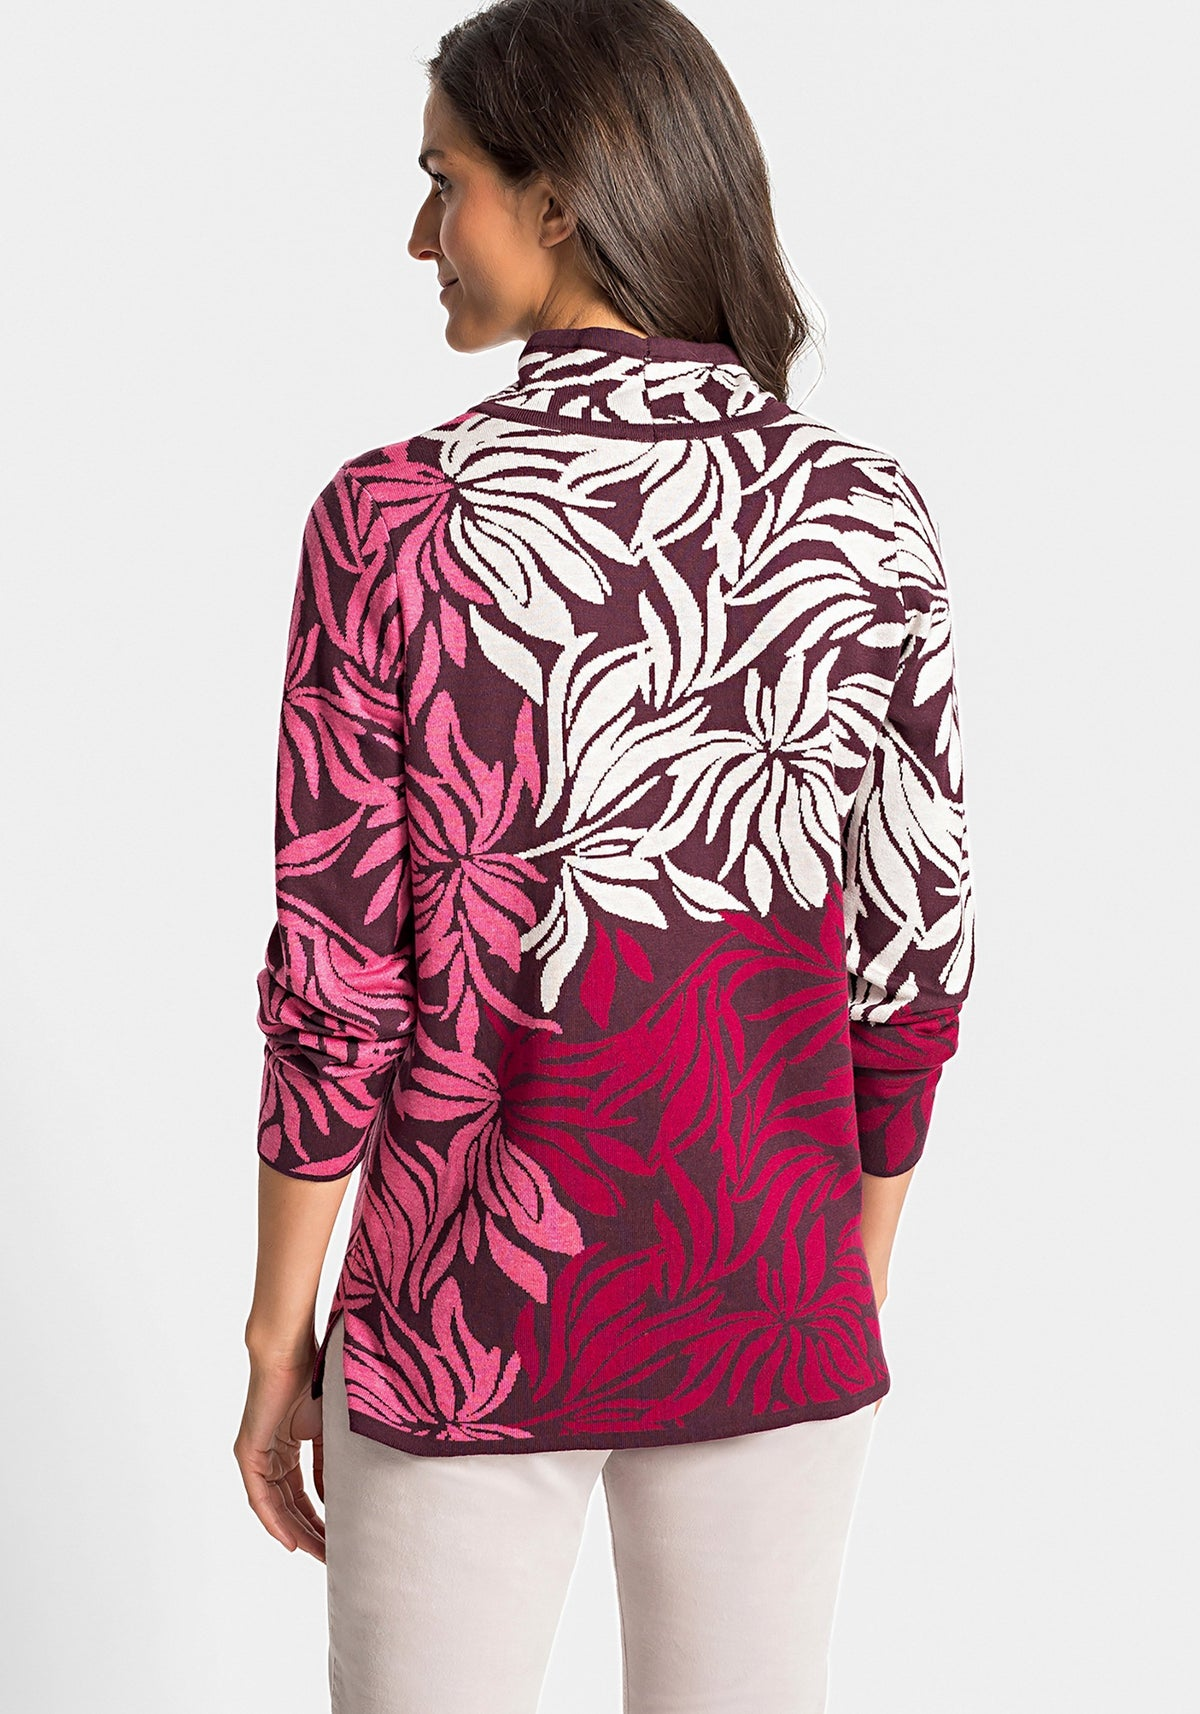 Long Sleeve Abstract Floral Mock Neck Sweater with Rhinestone Accents